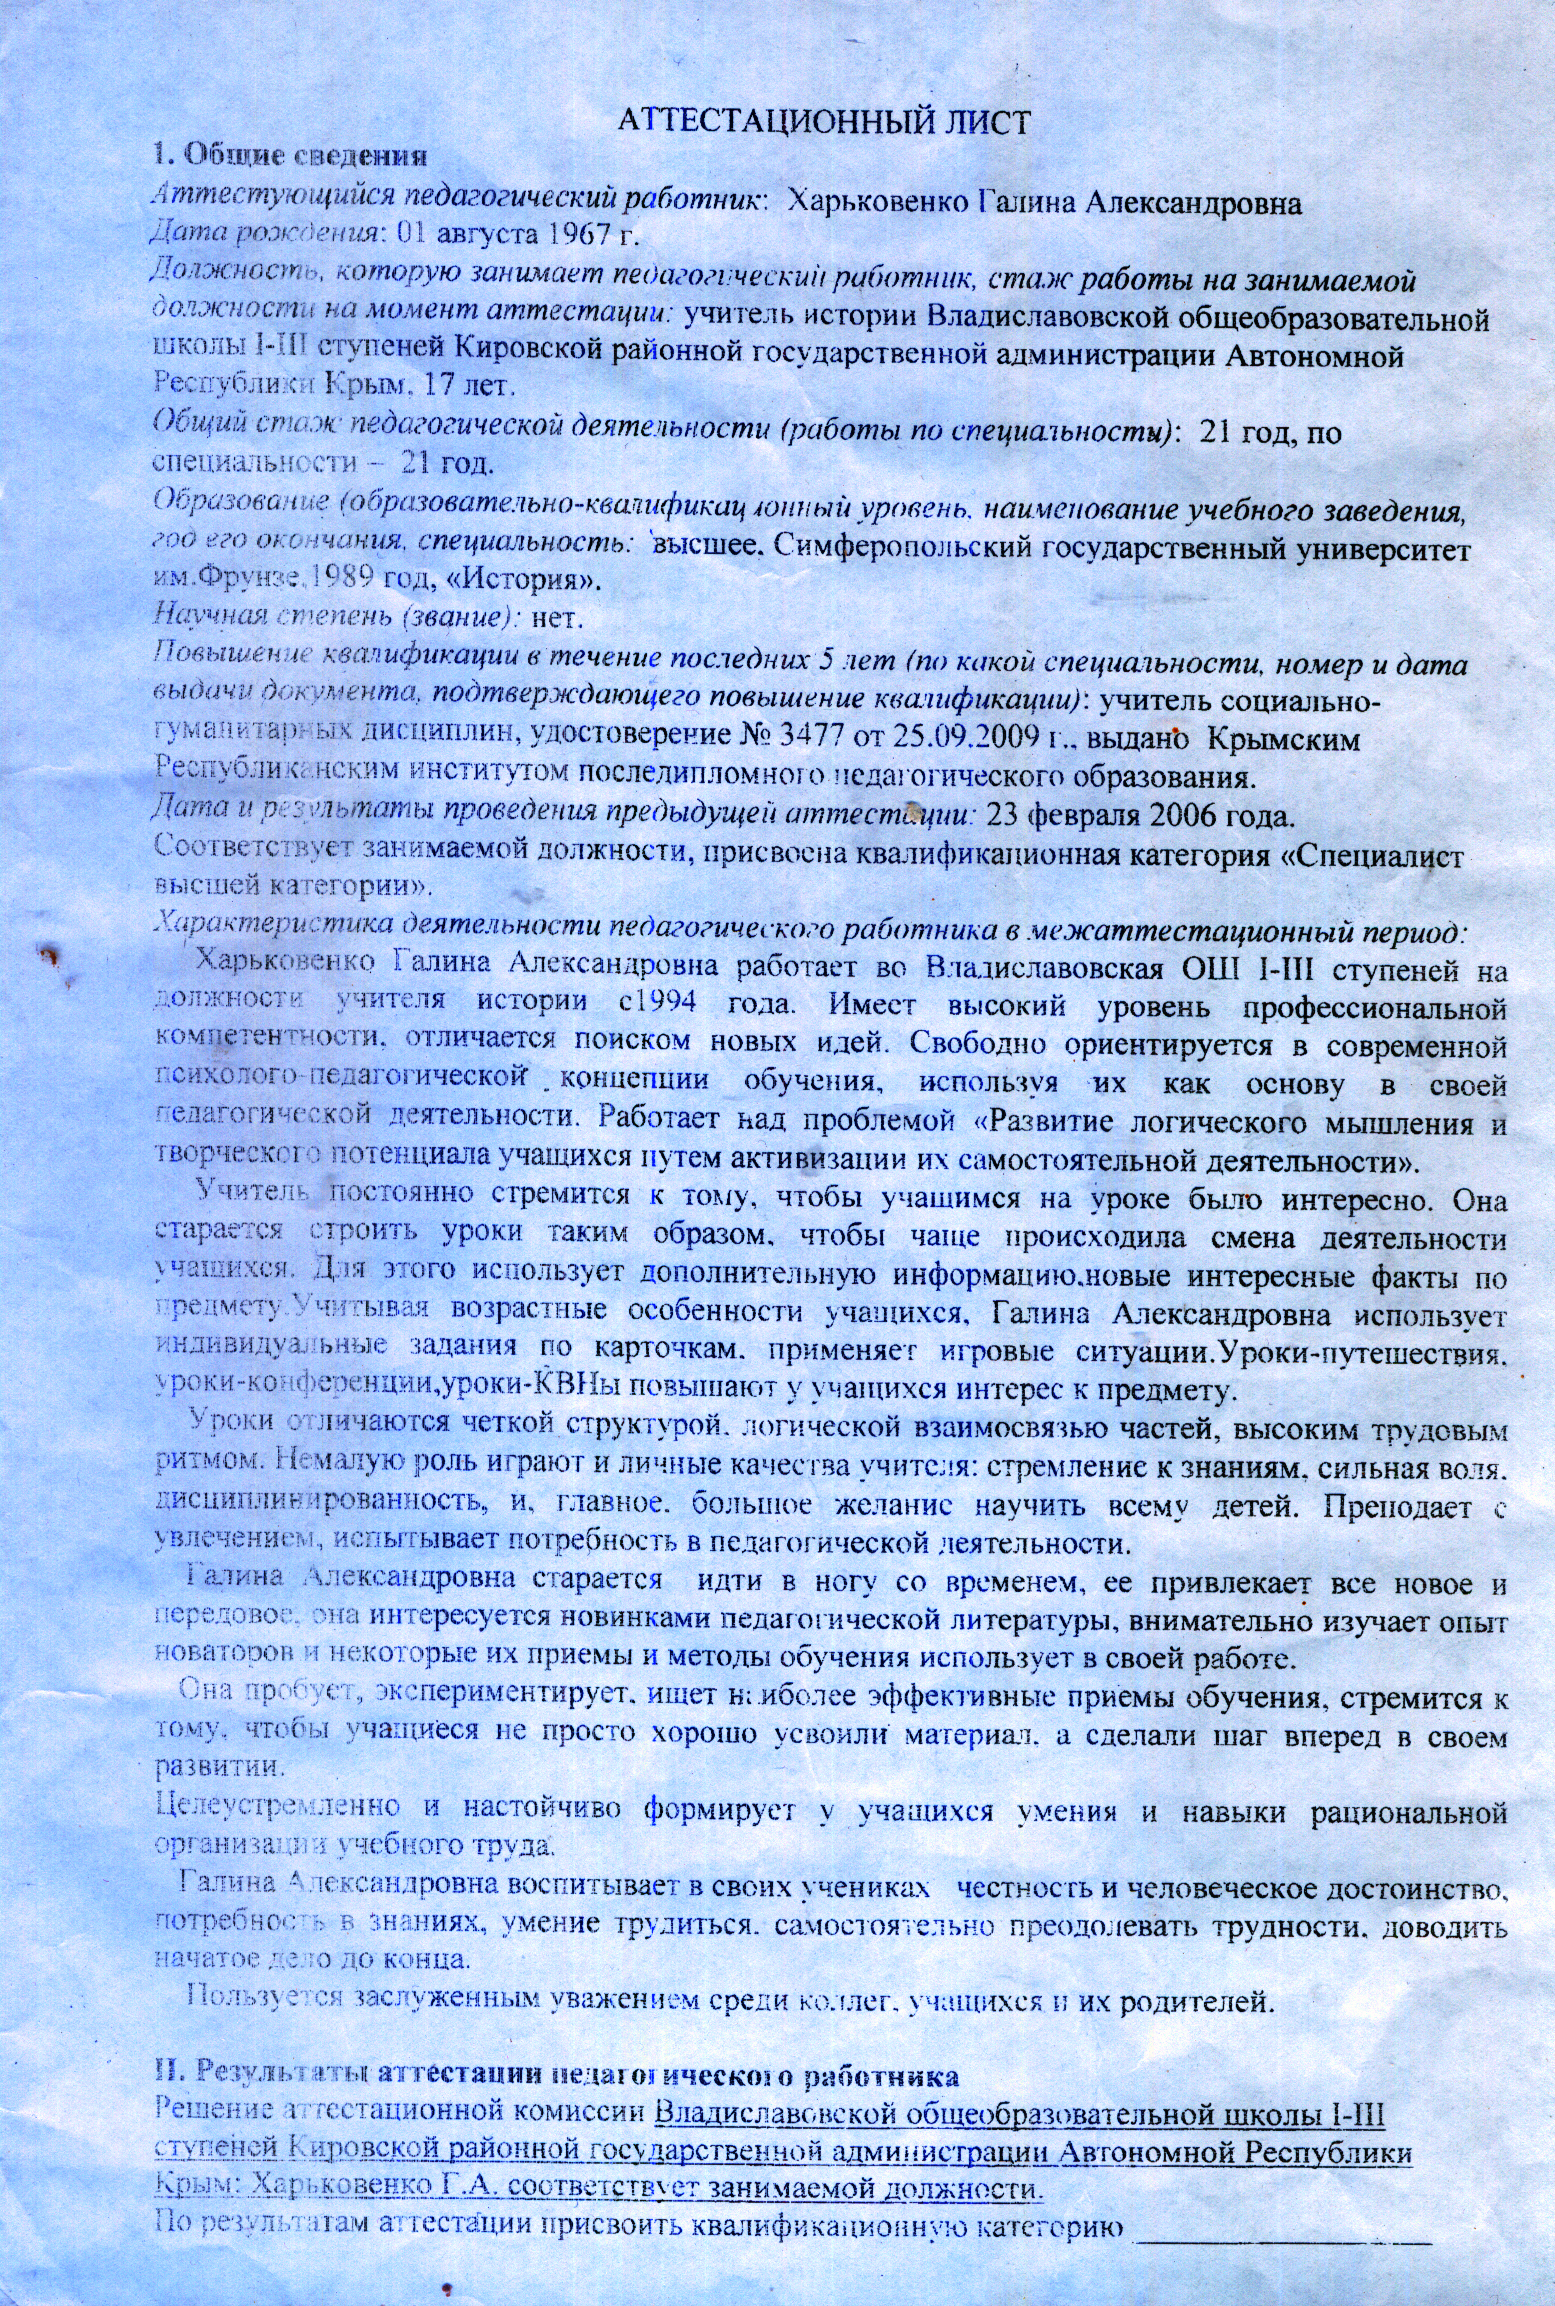 C:\Users\Санта\Documents\Scaning00020.bmp